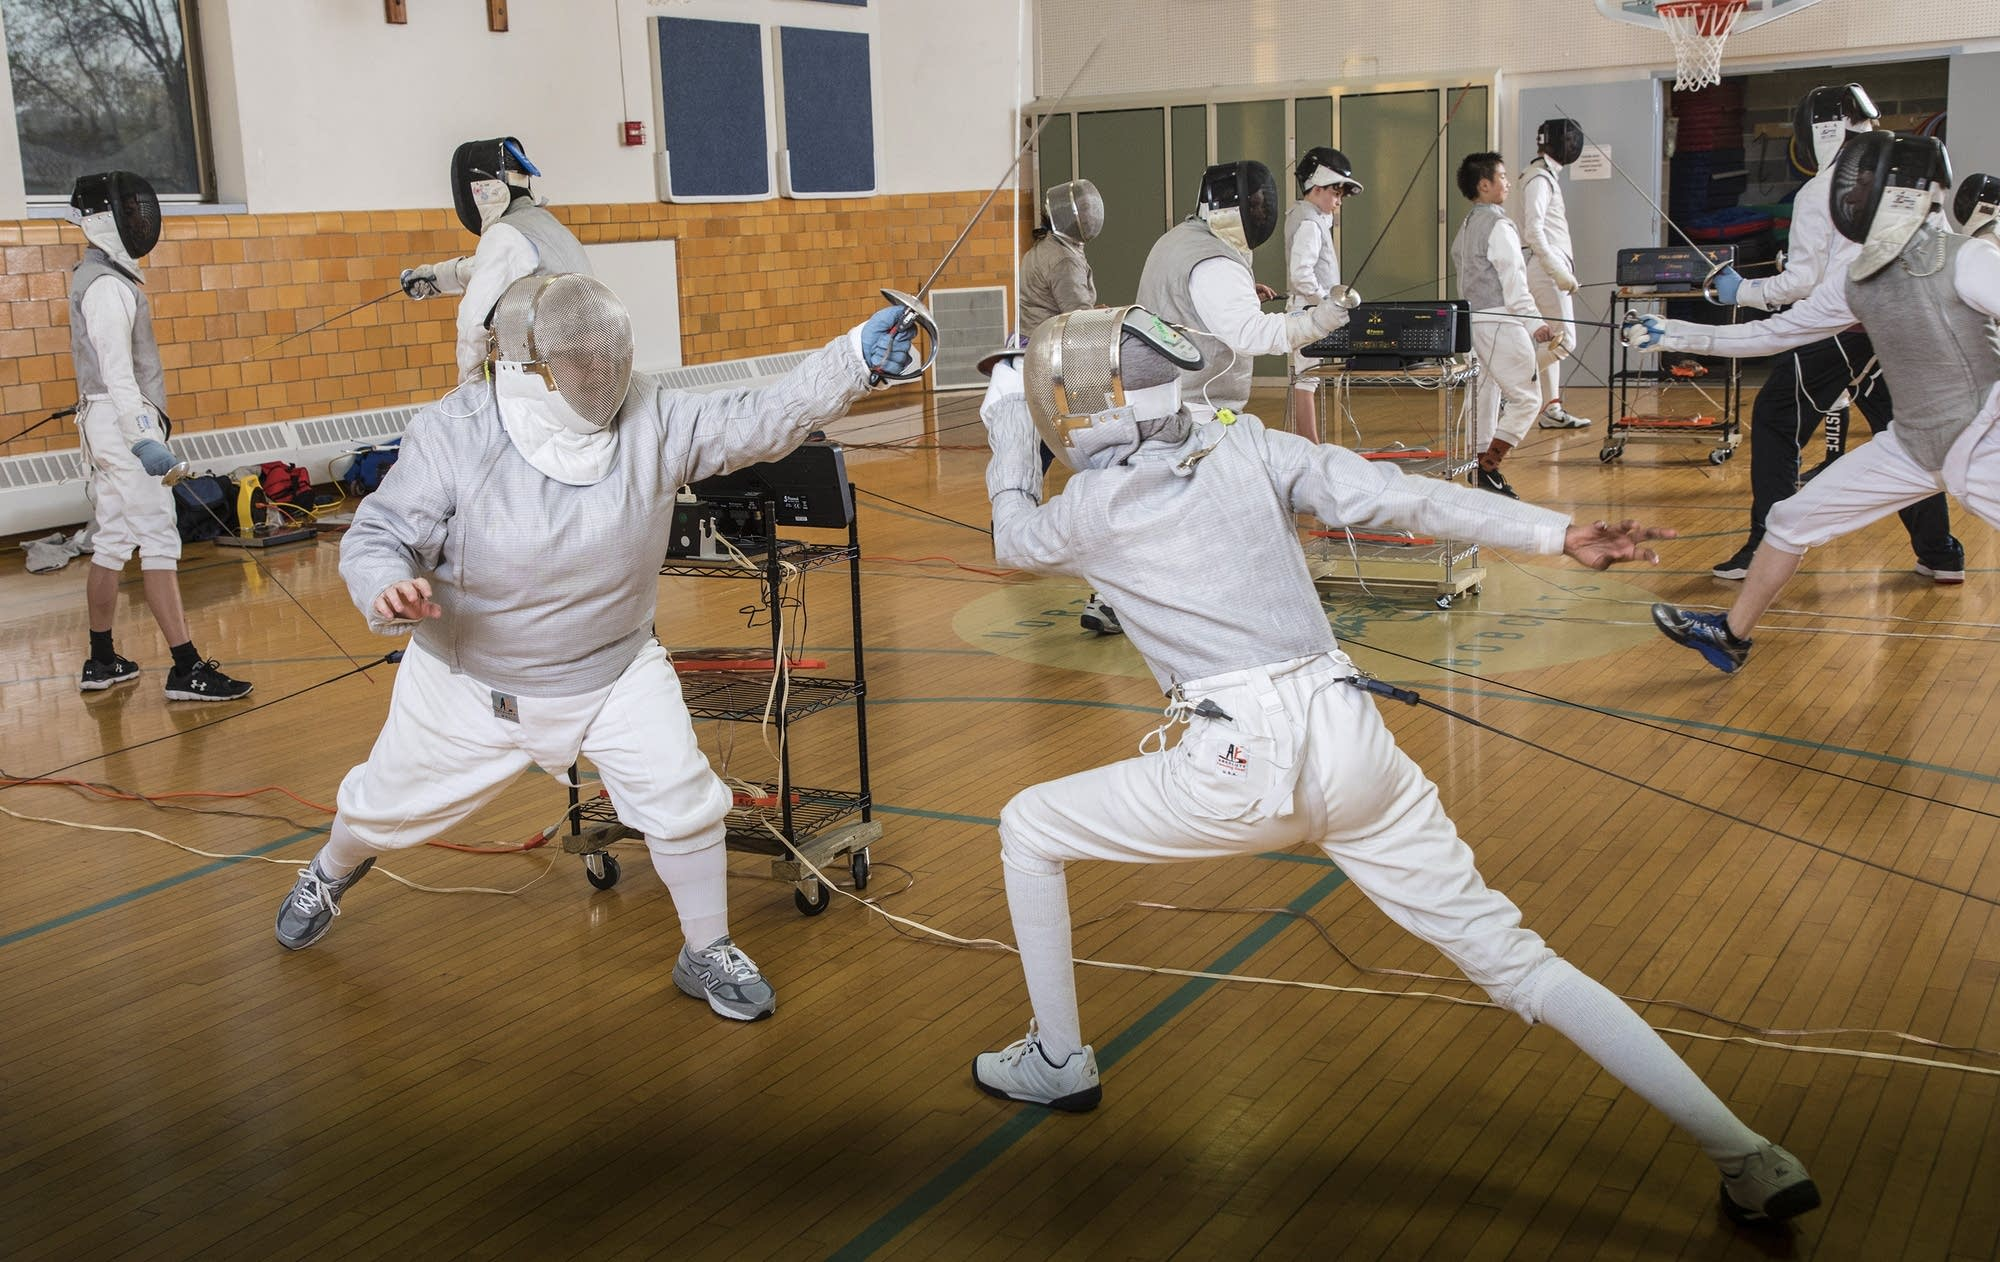 Instructor and fencing coach, Corlis Hicks, left, spars with a student.